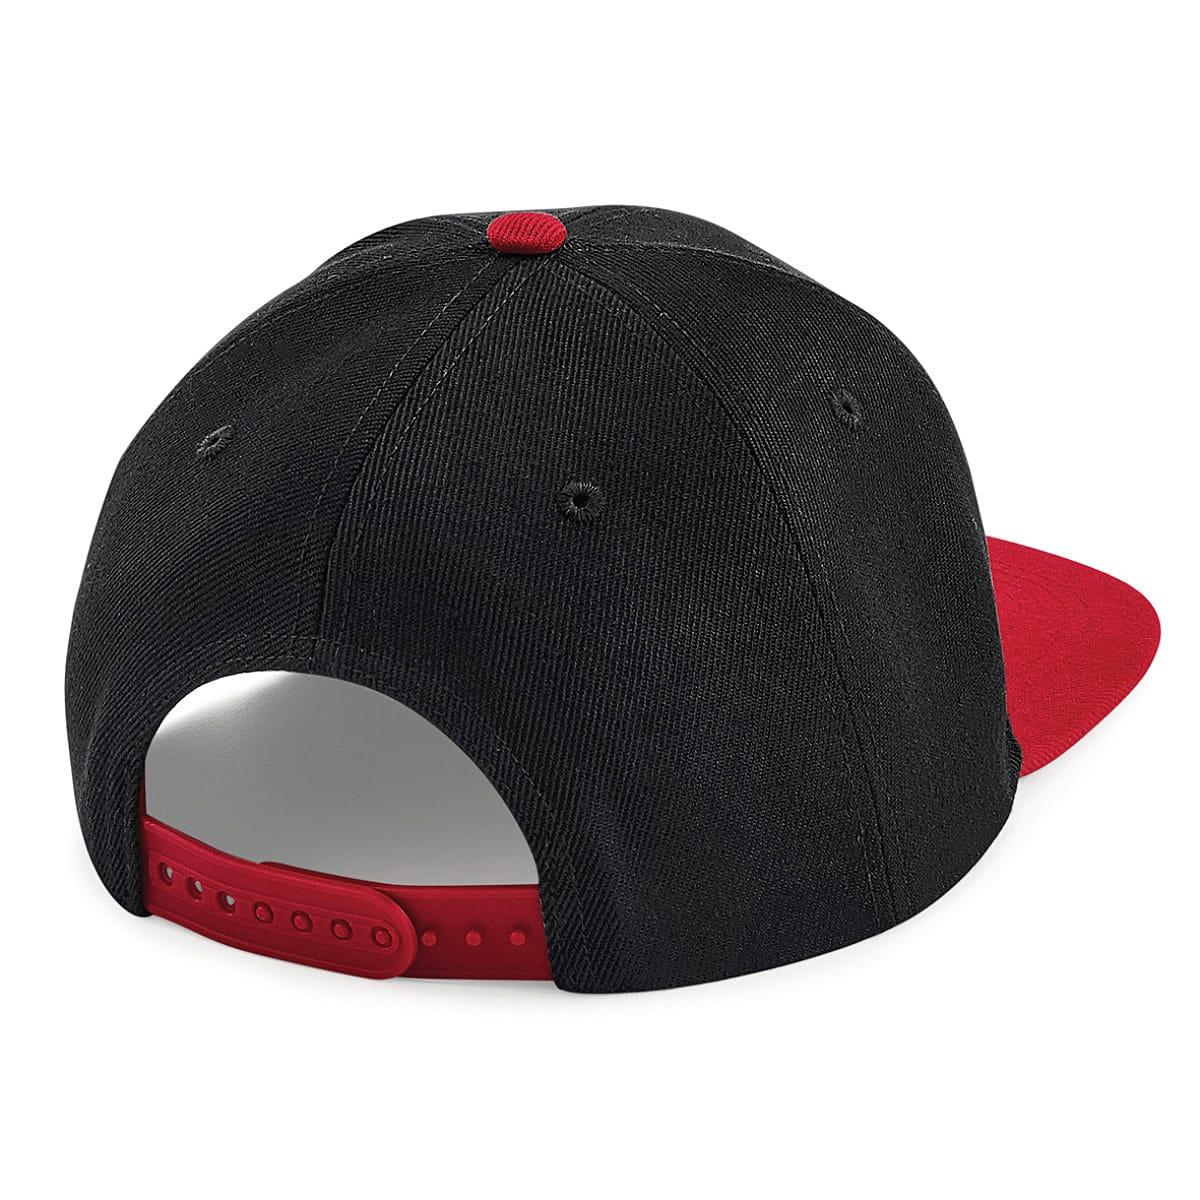 Original Flat Peak 6 Panel Snapback Cap in Black / Classic Red (Product Code: B661)